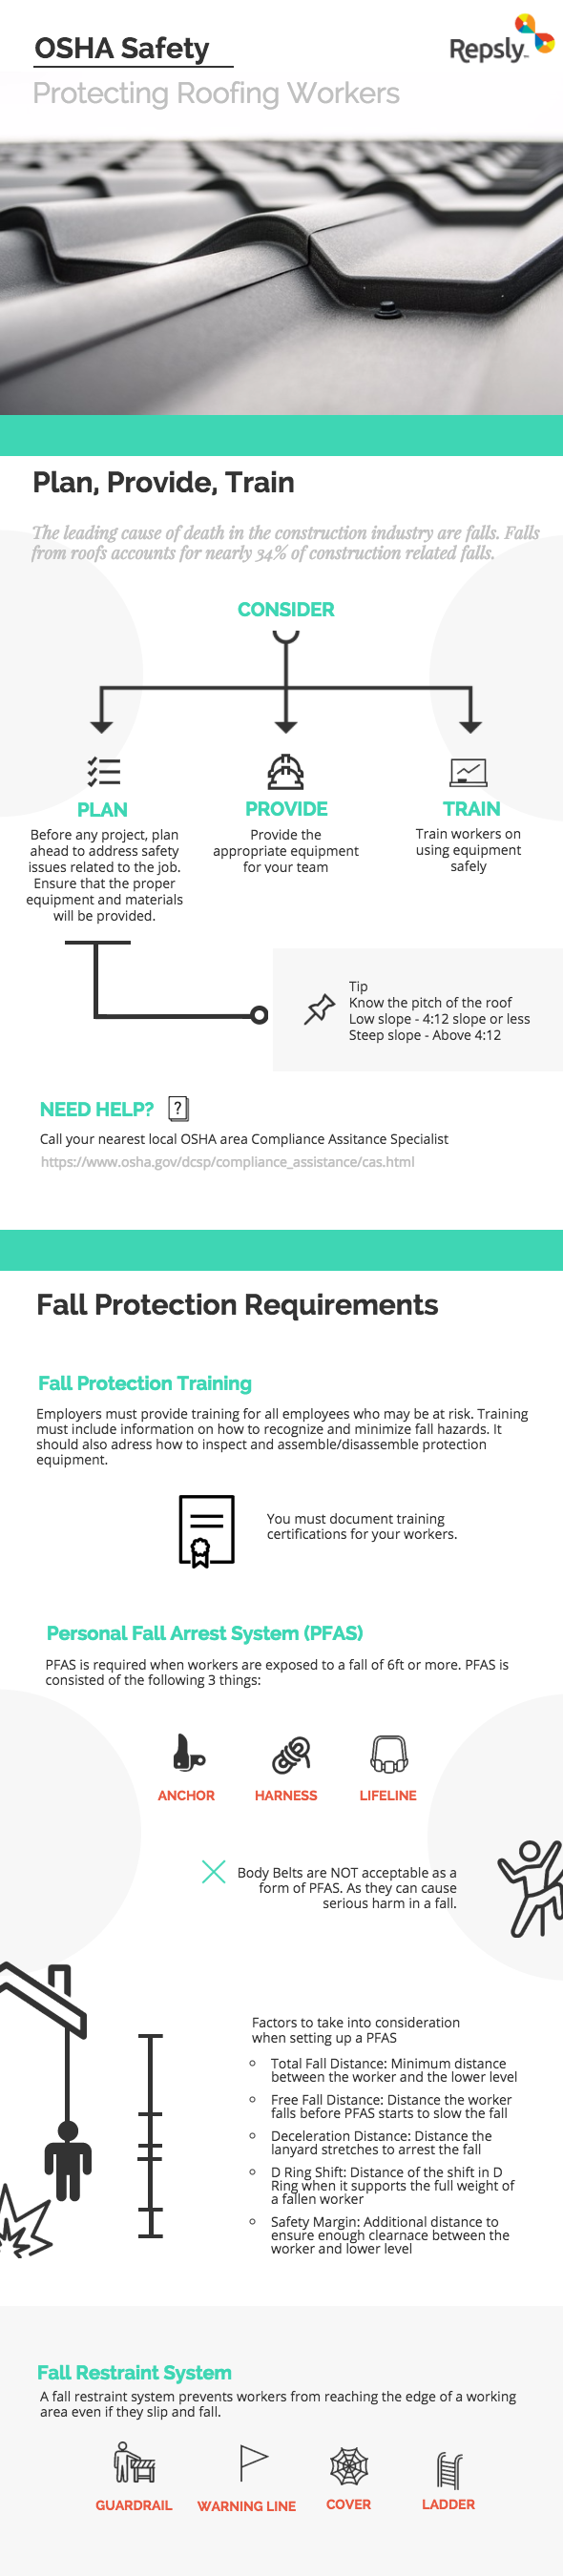 Osha Roof Safety Protecting Workers Infographic